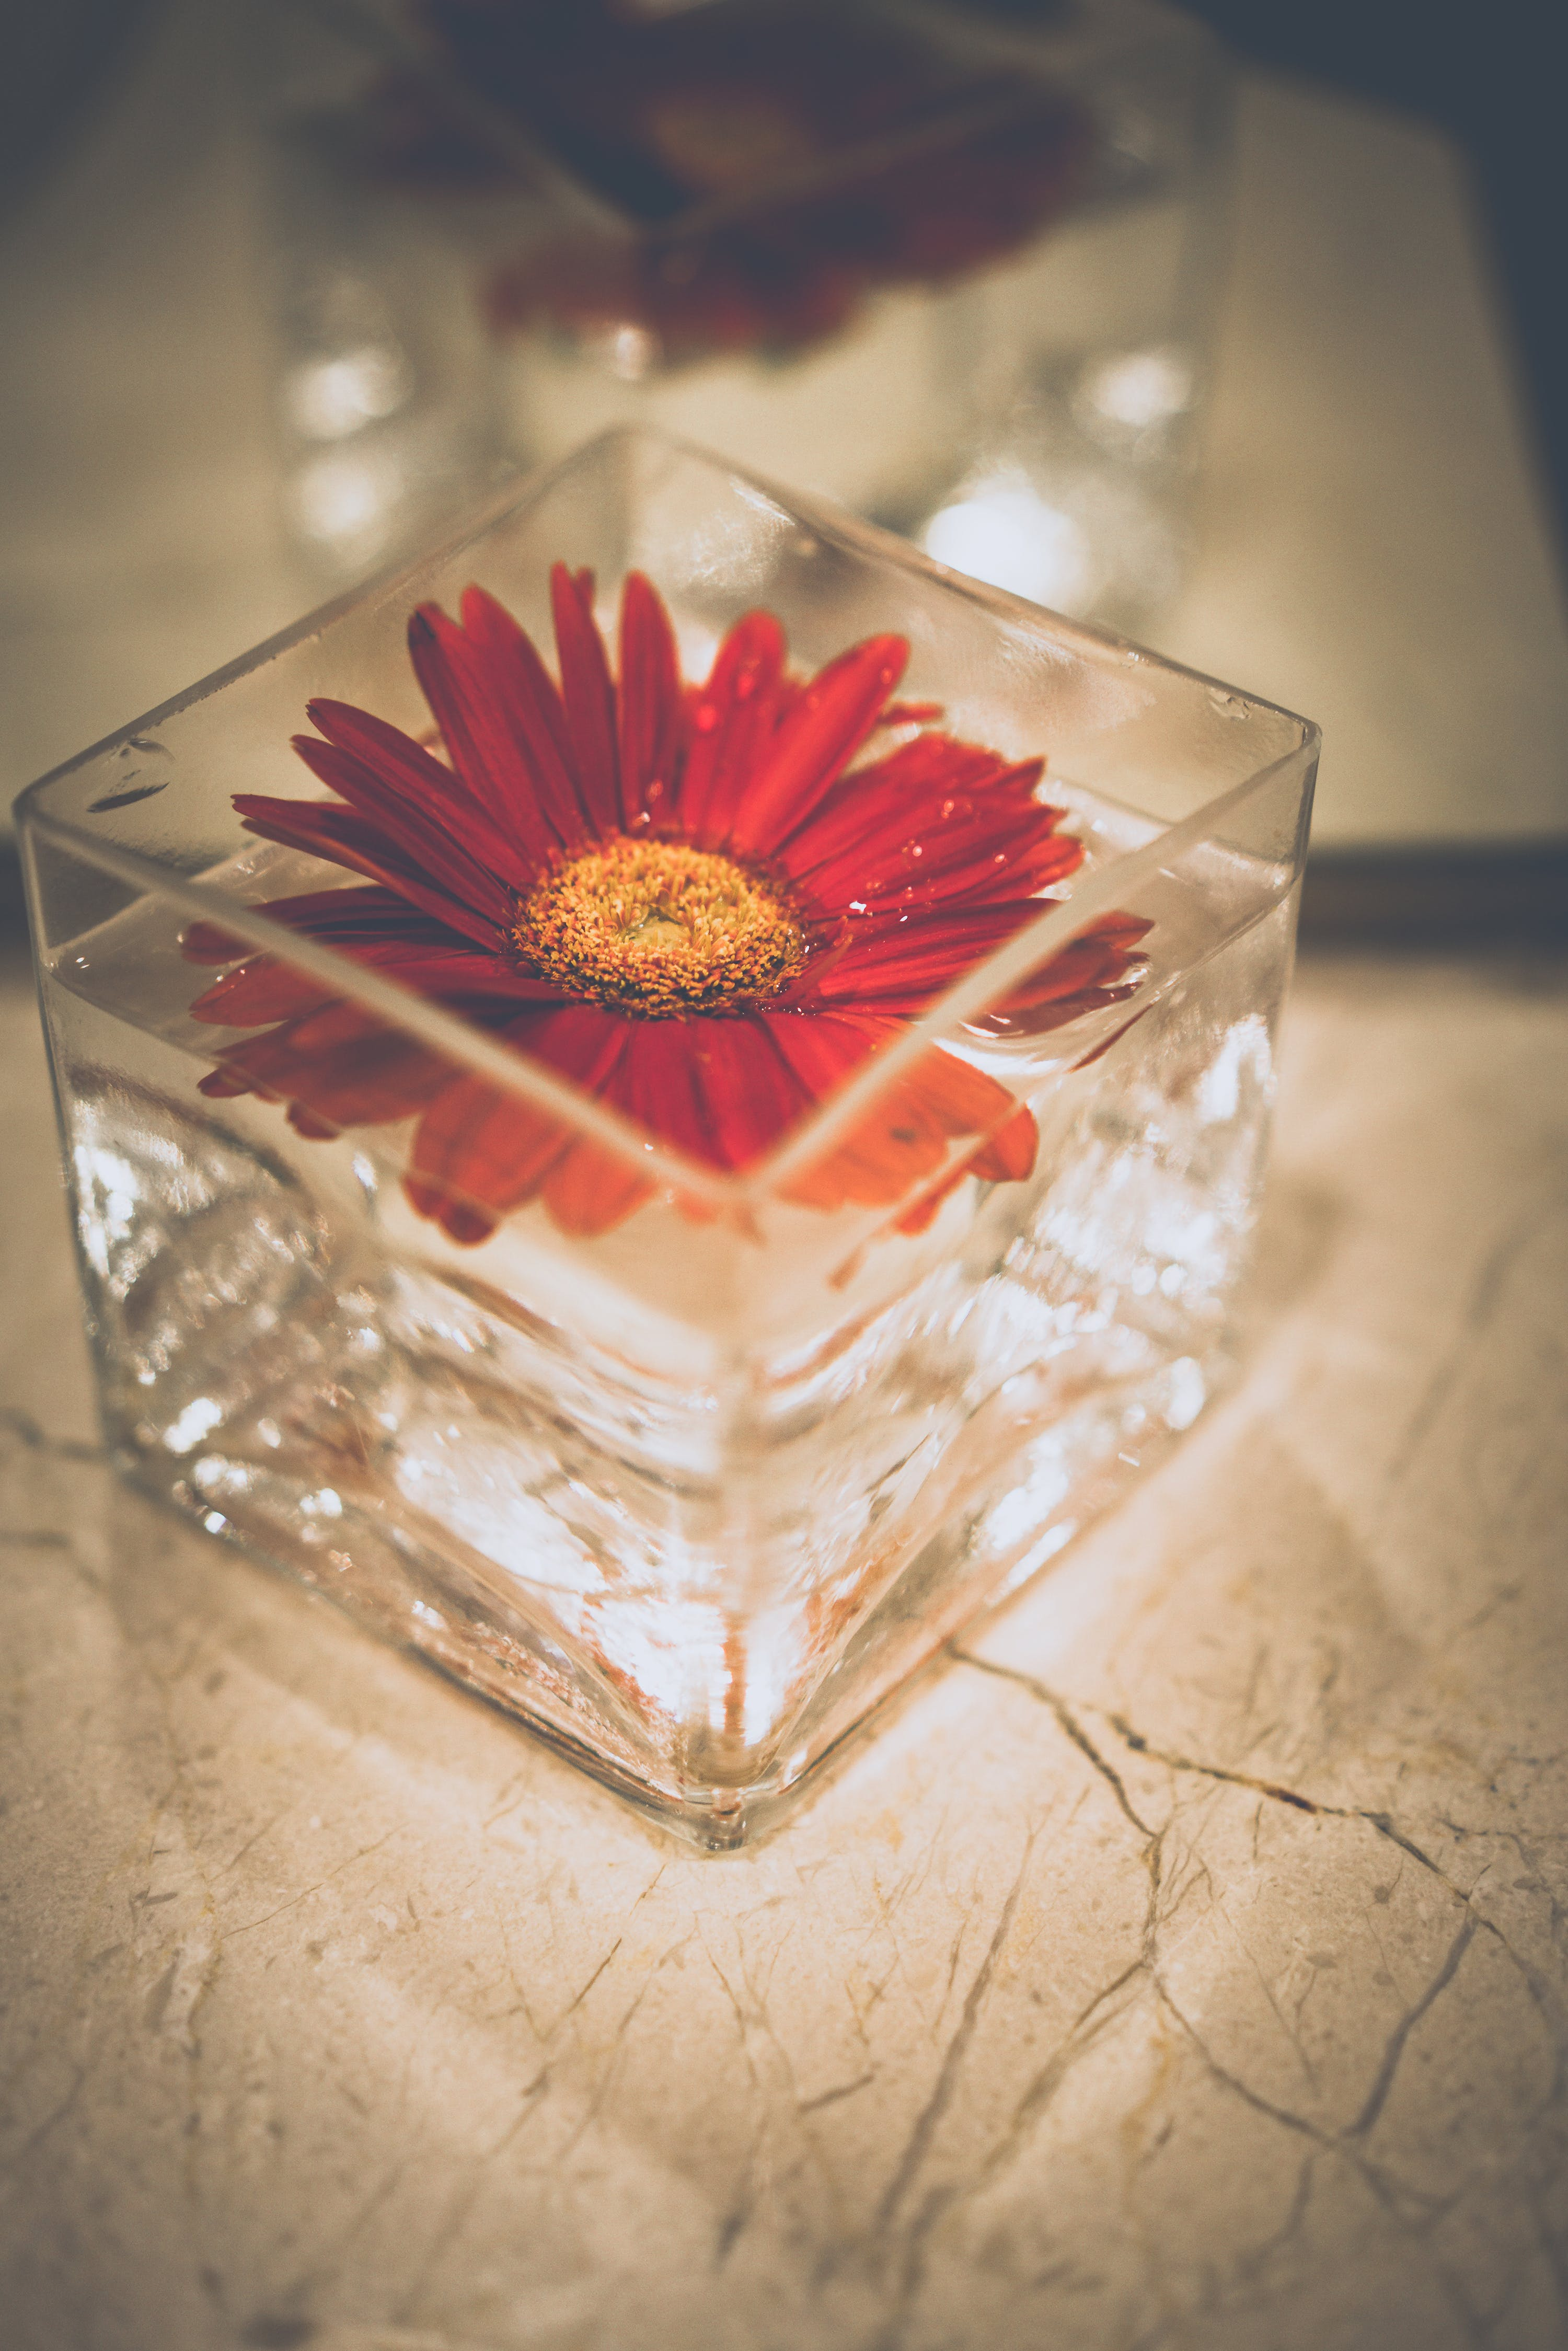 Shallow Focus Photography of Red Petal Flower Decor